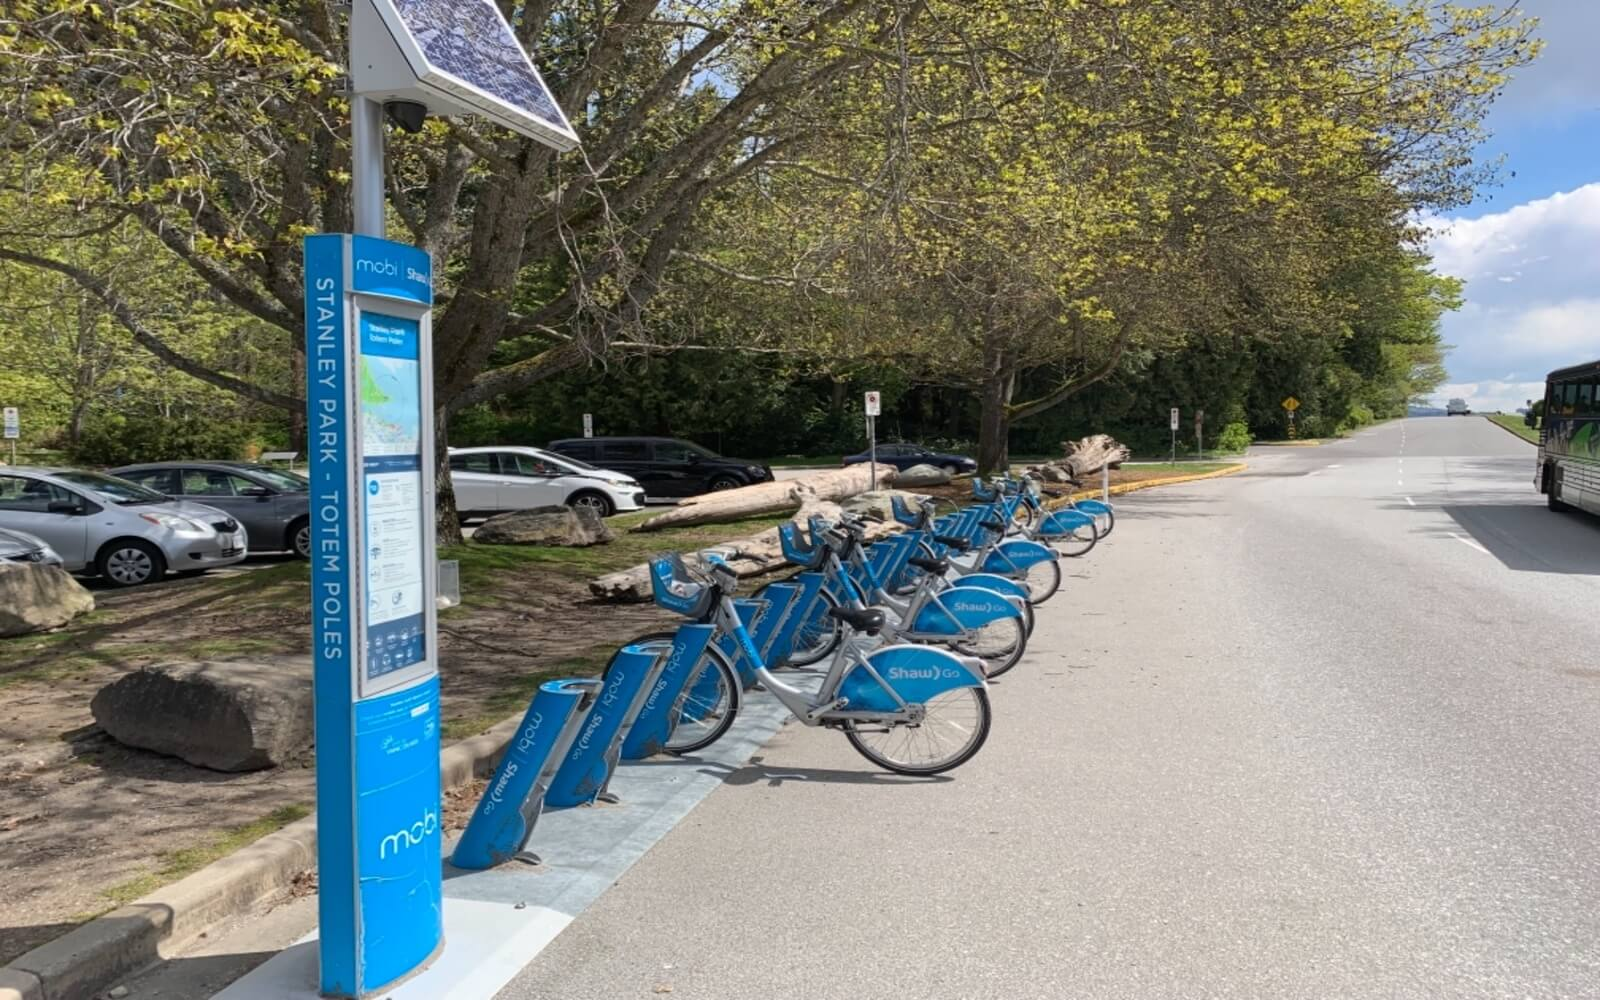 mobi bike share terminal in stanley park vancouver bc canada